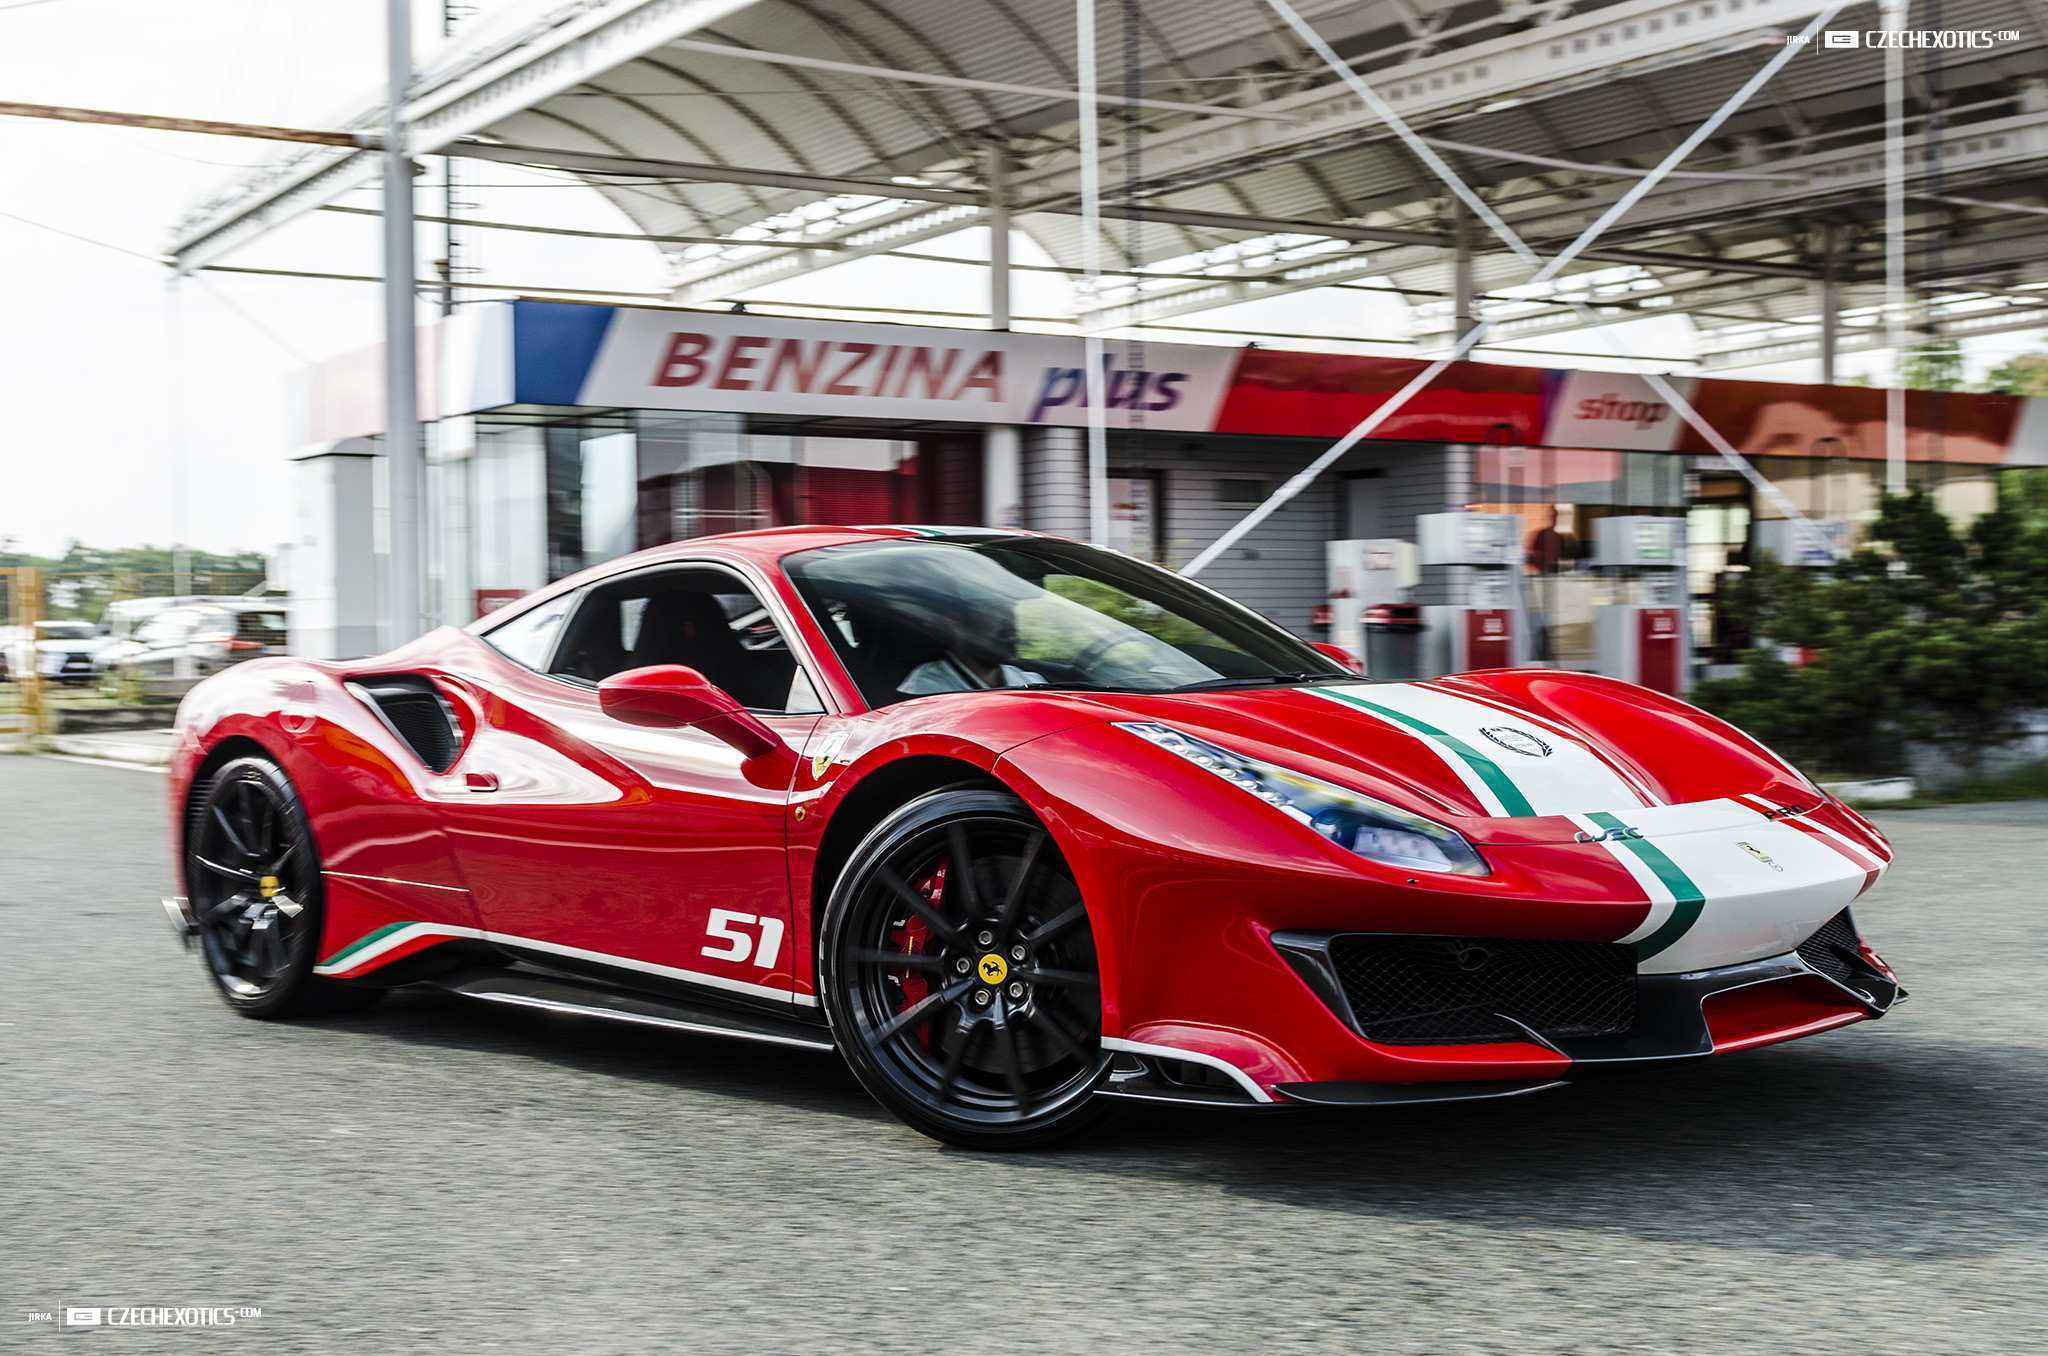 90 Best Review 2019 Ferrari 488 Pista 2 Configurations for 2019 Ferrari 488 Pista 2